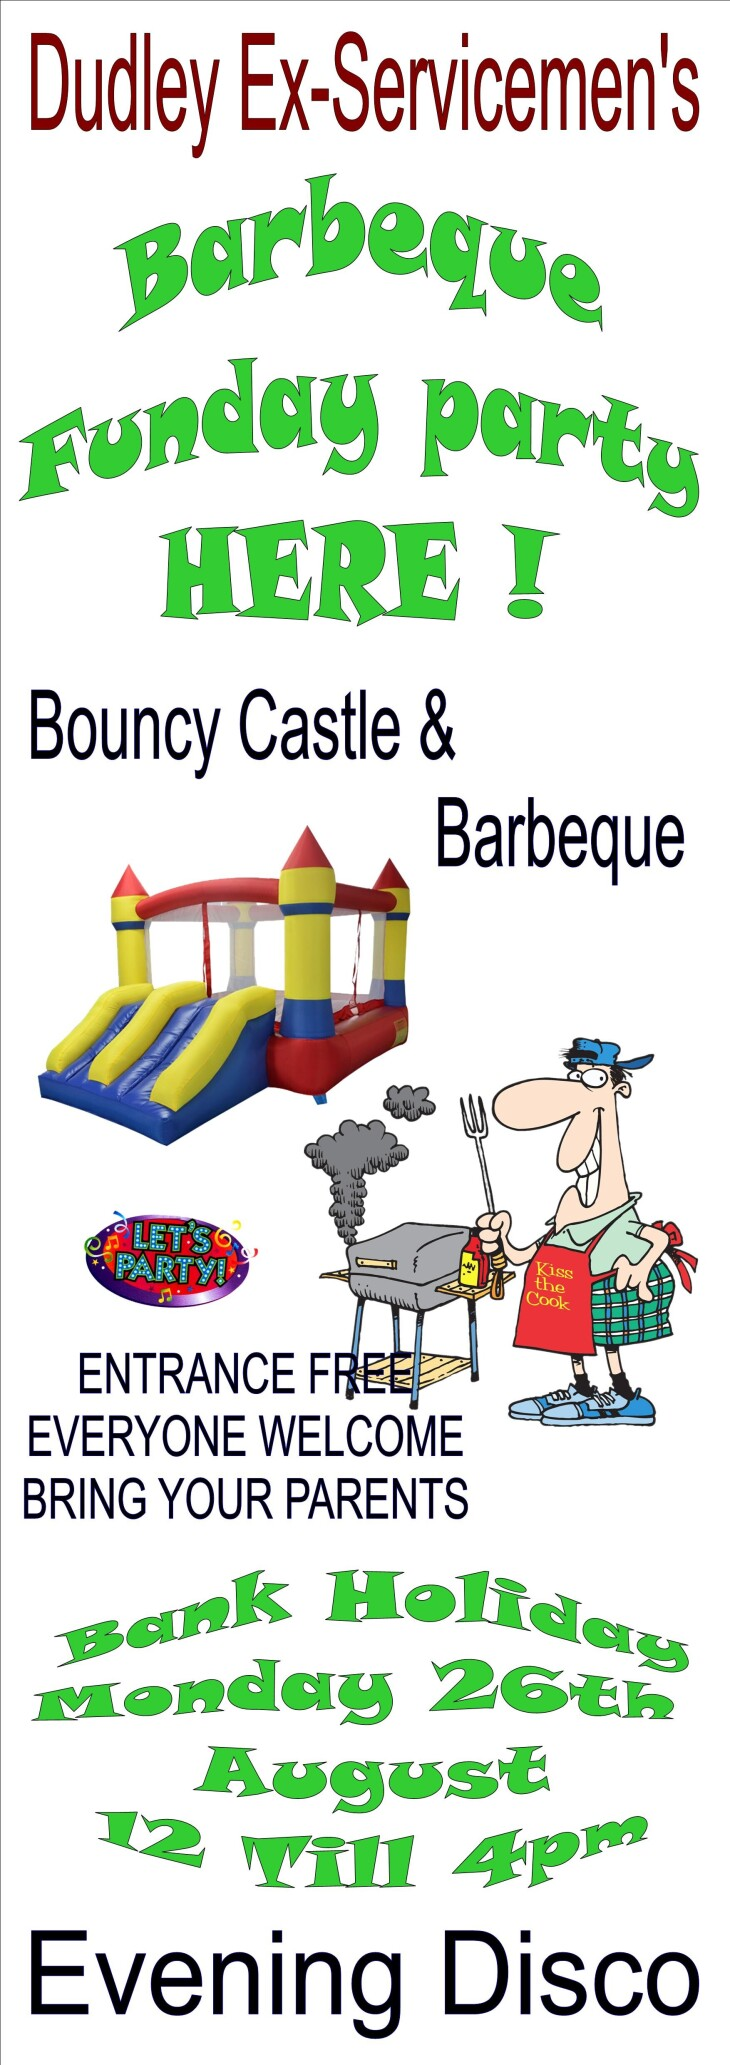 BARBEQUE & BOUNCY CASTLE